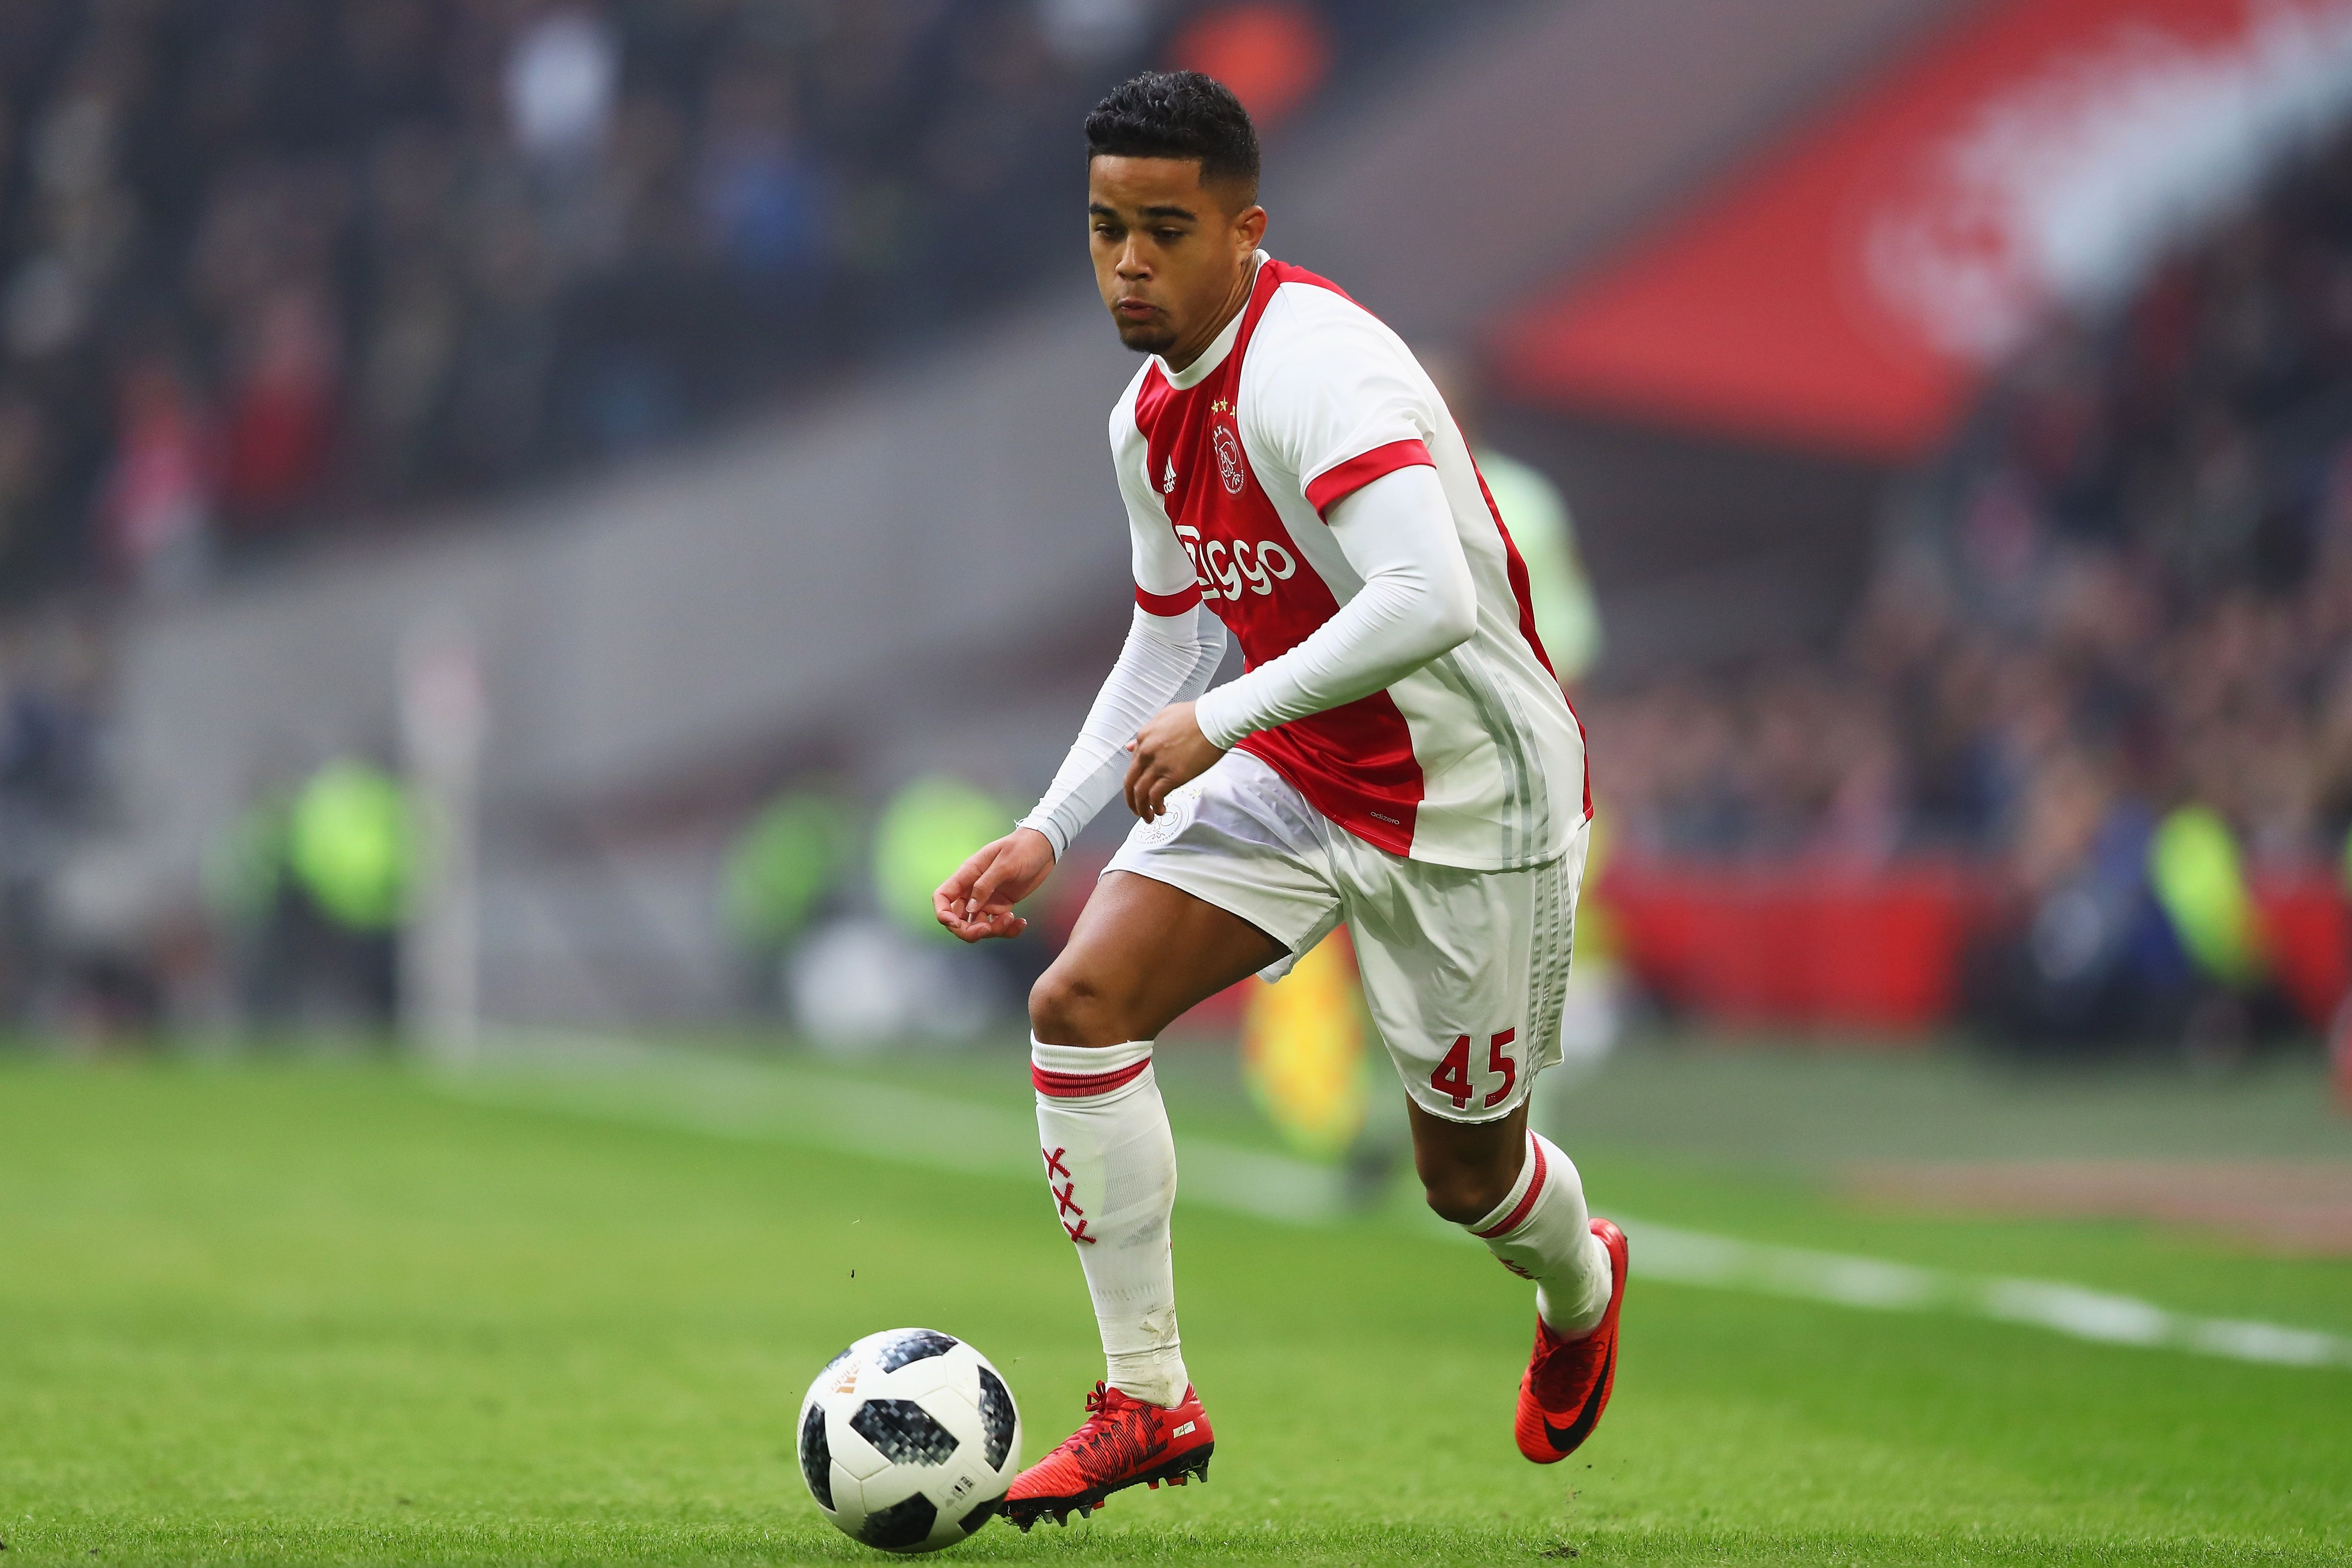 Soccer  Justin Kluiverts Serie A move is almost done -      Everyone wants Ajax starletJustin Kluivert  For weeks if not months there have been plenty of transfer stories swirling aroundAjaxs Justin Kluivert.  Justin Kluivert is currently on the books at Ajax following in the footsteps of his dad Patrick. But Justins contract with Ajax survives until 2019 and theres plenty of speculation the 19-year-old could be sold this summer.  Justin Kluivert who often plays down the left-wing scored 10 goals and chipped in with five assists for Ajax last season in the Dutch top flight.  Liverpool & Tottenham  In recent weeks Liverpool and Tottenham have both been name-dropped in theKluivert conversation.  Corriere dello Sport claimed that Tottenham and Liverpool have both lodged 25 million euro bids for Kluivert with Ajax.  Ajax were said to be holding out for a 30 million euro offer.  But the big news in Dutch paper Telegraaf on Monday is that AS Roma are on the verge of confirming theirKluivert deal.  AS Roma win theKluivert race  Telegraaf believe that Justin Kluivert could be unveiled as a Roma player on Monday or Tuesday. Roma are thought to be willing to pay Ajax their asking price for Kluivert.  That could see Ajax collected 17.5 million euros this summer. Roma will also be committed to future payments of around 21-22 million euros determined by various add-ons.  Kluivert is tipped to sign a five year deal to move to the Stadio Olimpico.  Could Roma sign another Ajax star as well?  Telegraaf tail off their report linking the Romans with Ajaxs Moroccan international wingerHakim Ziyech.  Na een weekend gesteggel over min of meer gegerandeerde bonussen nadert @OfficialASRoma door #Ajax verlangde transfersom van (maximaal) ruim 21 miljoen euro voor #Kluivert. Akkoord tussen clubs maandag of dinsdag verwacht. Meer in papieren editie @telesport   Mike Verweij (@MikeVerweij) June 10 2018  Also see: Nabil Fekir & Manuel Lanzini blows: Liverpool search for new forwards.  Why Arge